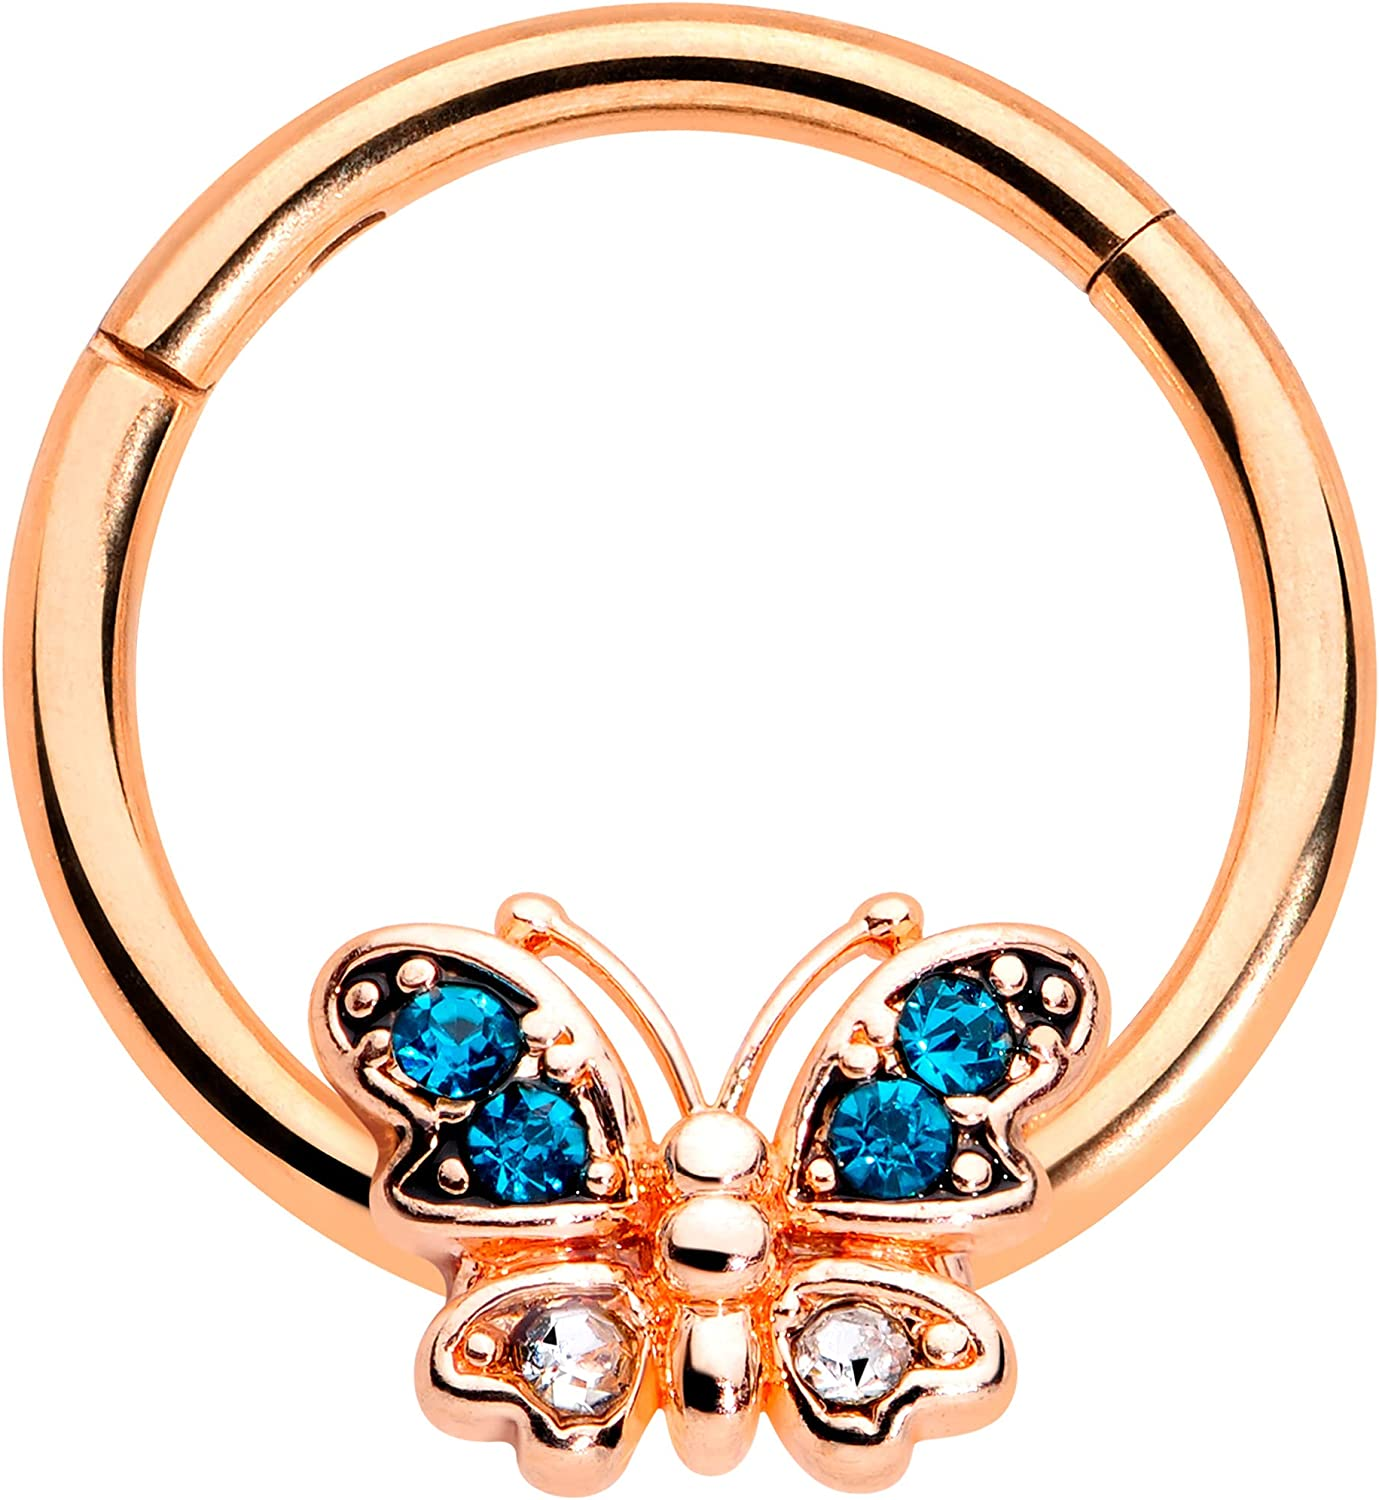 Body Candy 16G PVD Steel Hinged Segment Ring Seamless Cartilage Nipple Ring Blue Butterfly Nose Hoop 3/8